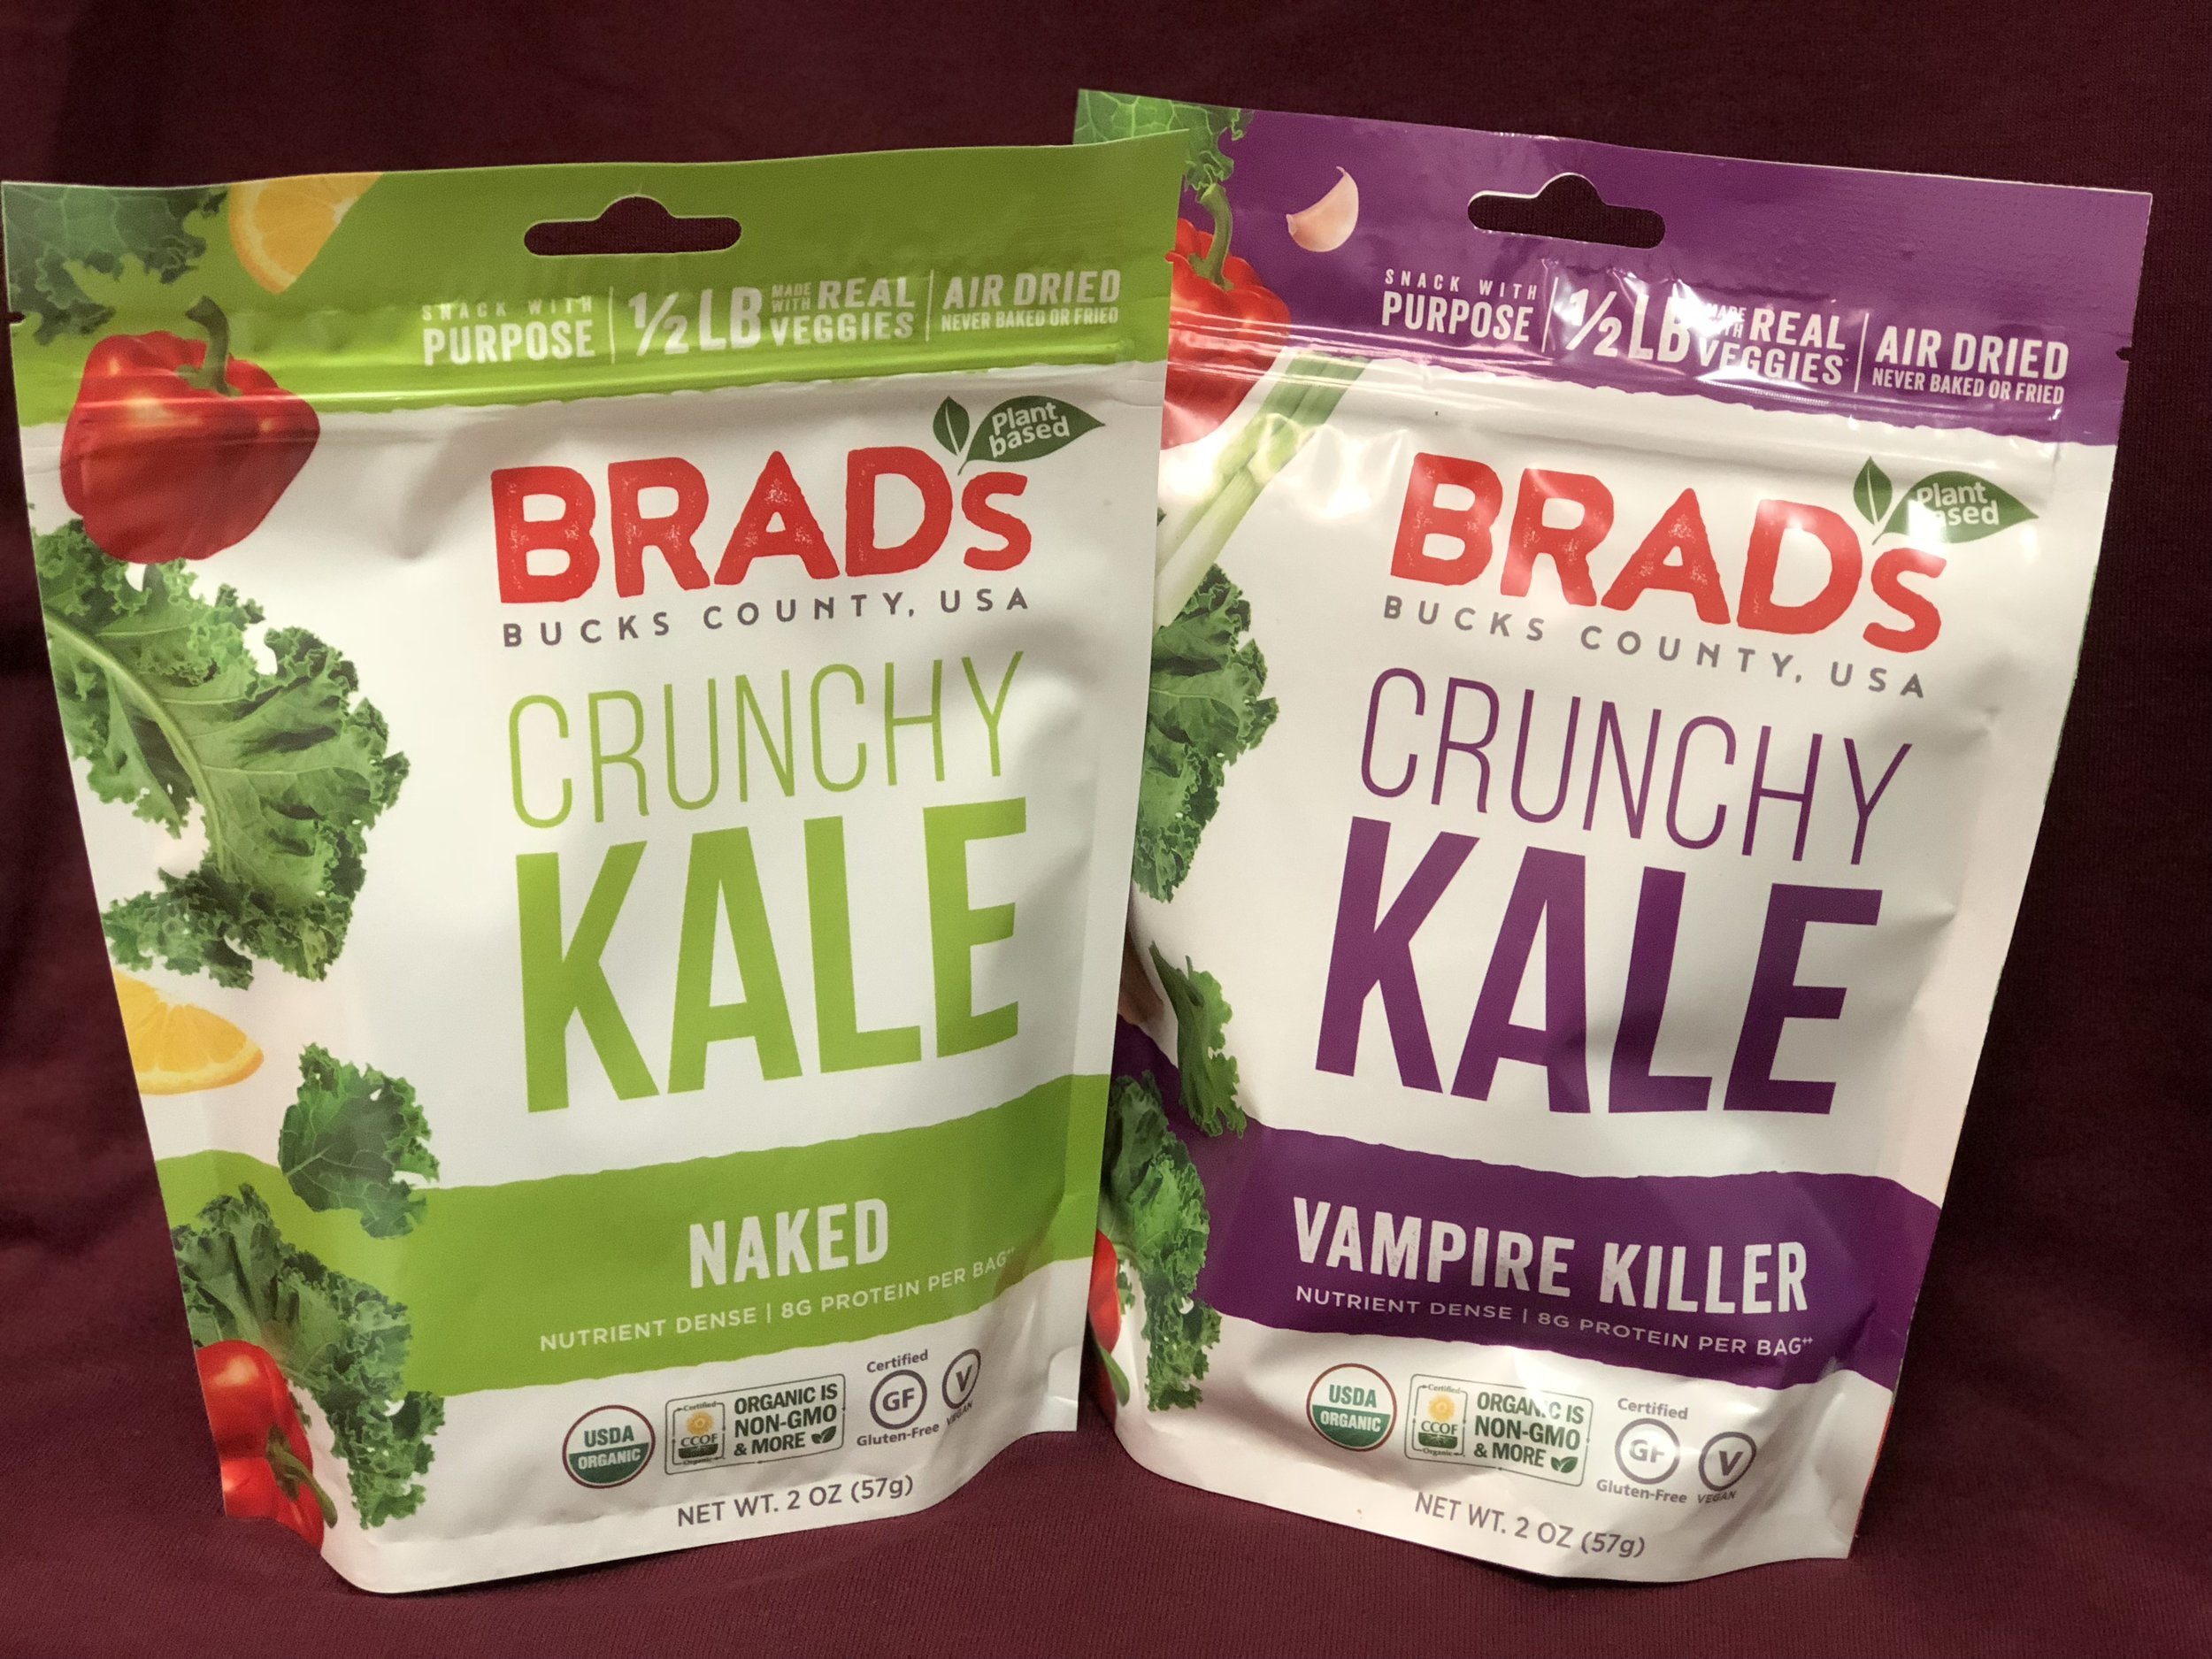 Brad's Kale Snacks